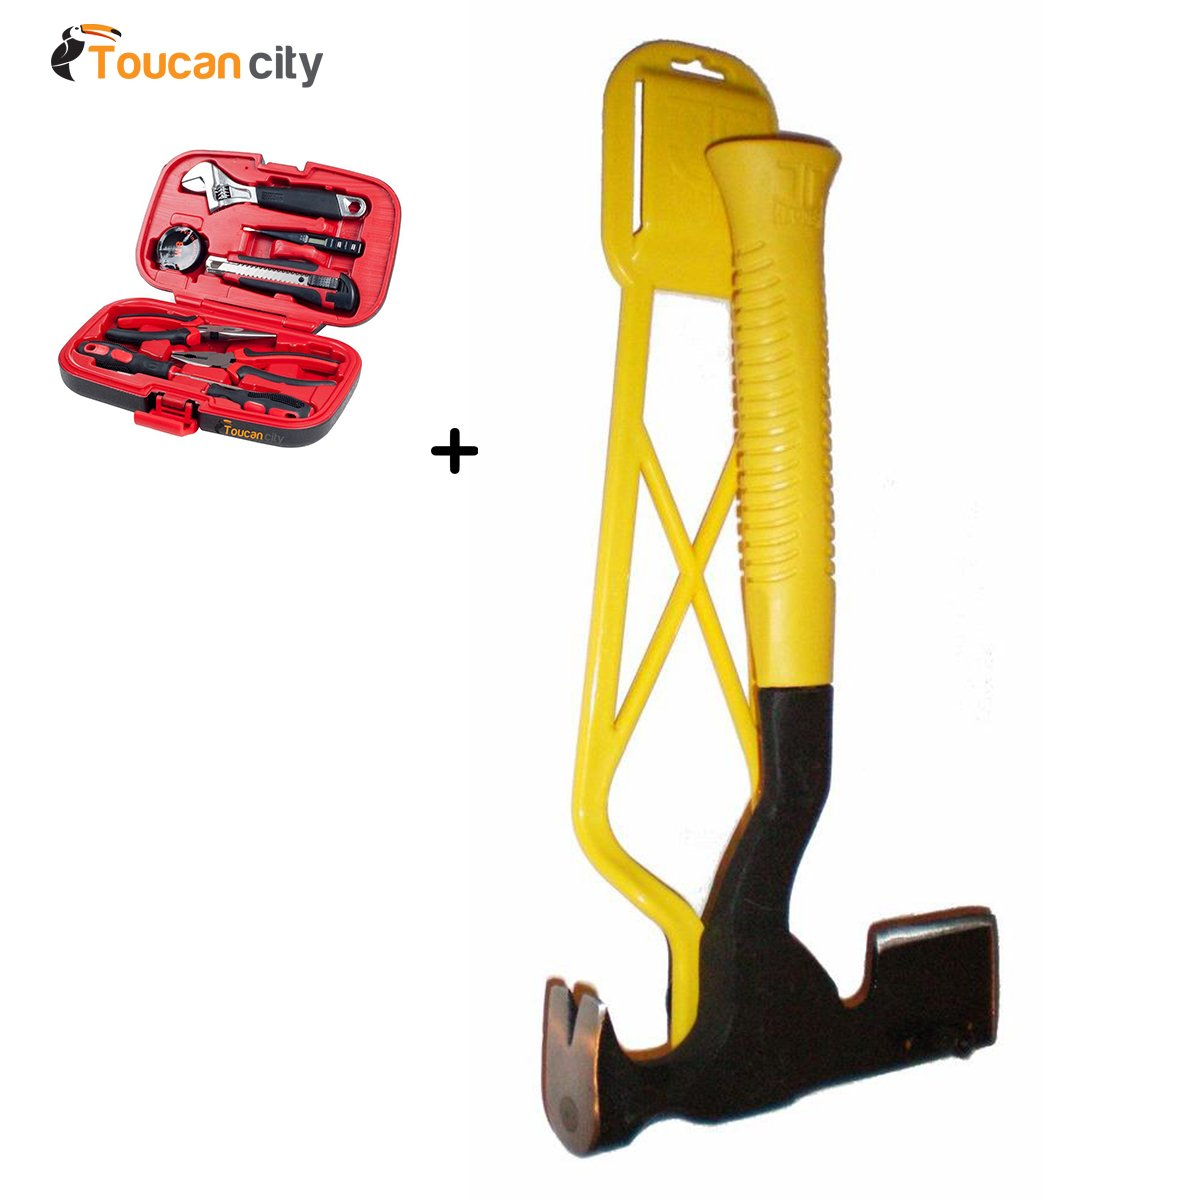 JC Hammer Magnetic Hatchet with Easy Holder EW0045 and Toucan City Tool kit (9-Piece)